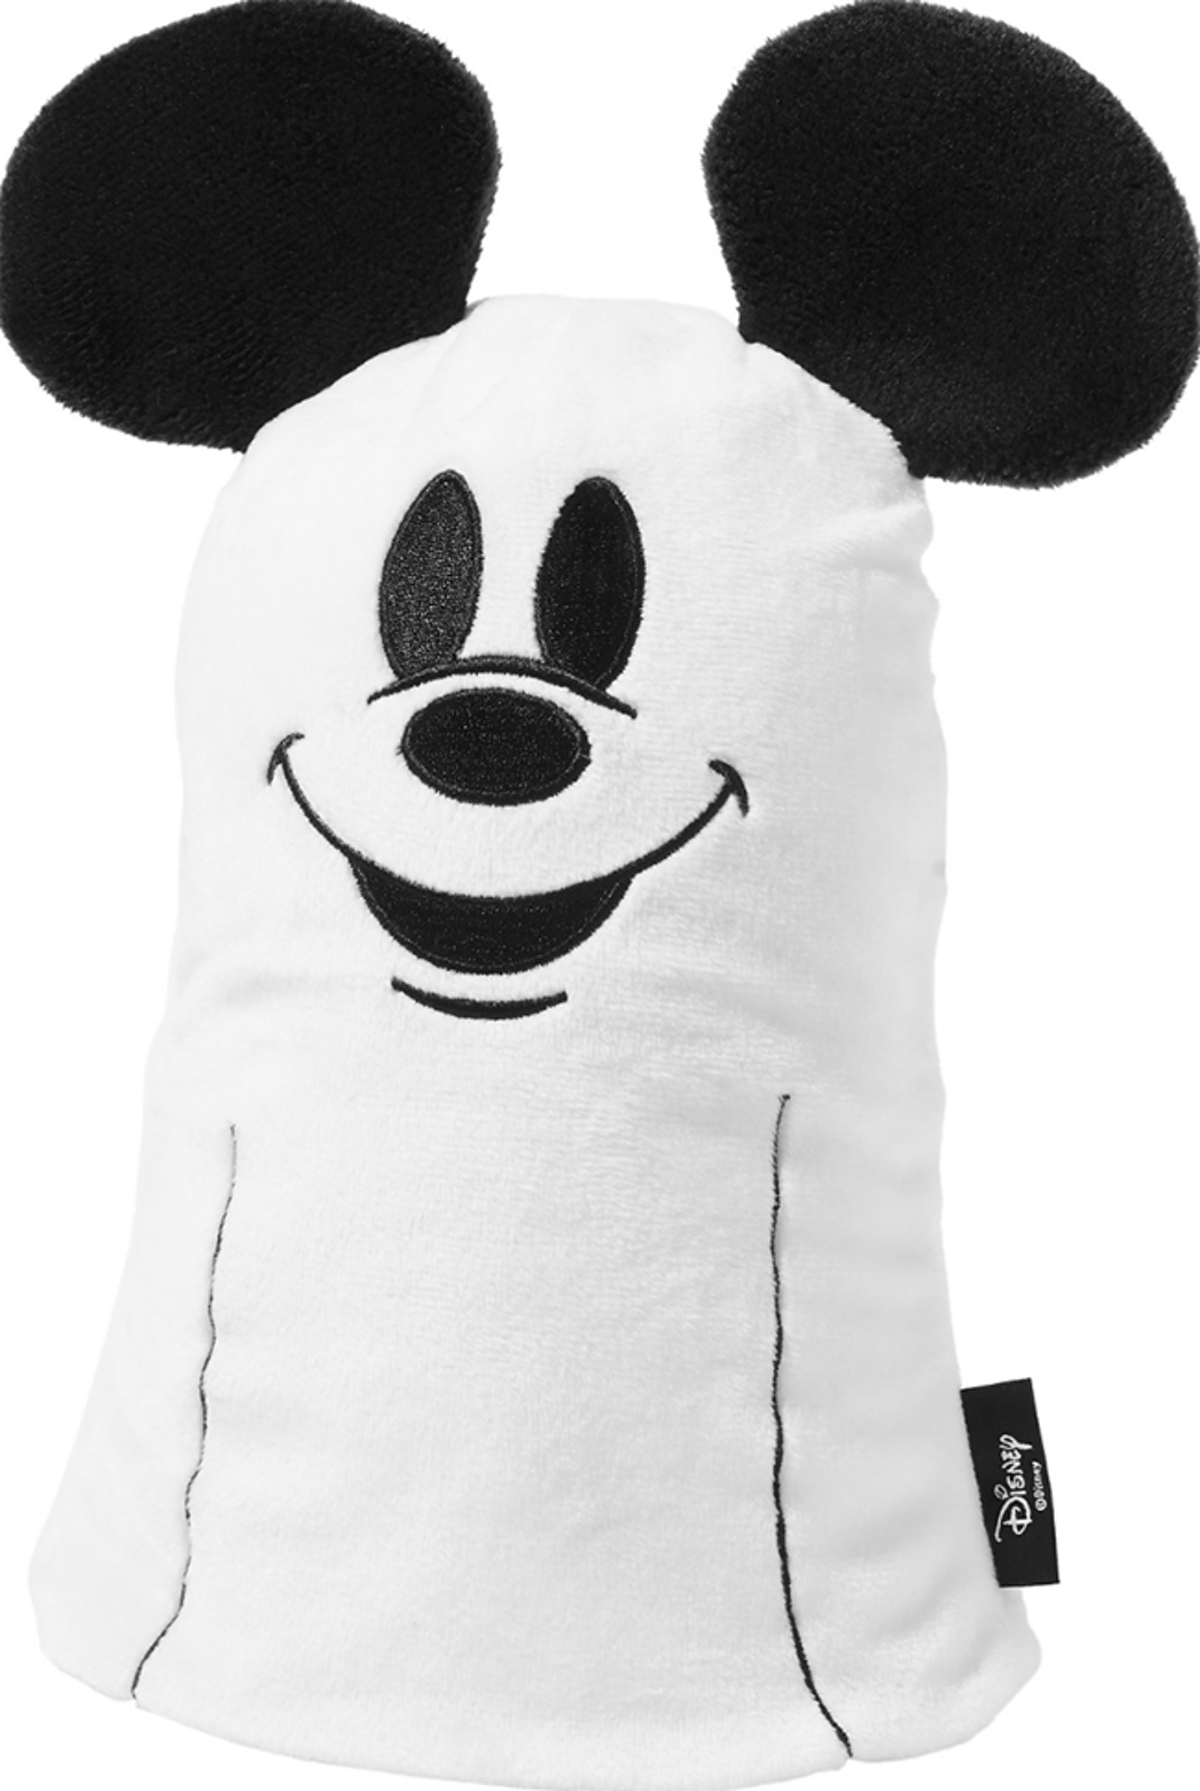 This ghost Mickey dog toy is part of Chewy's Disney Halloween toy collection.